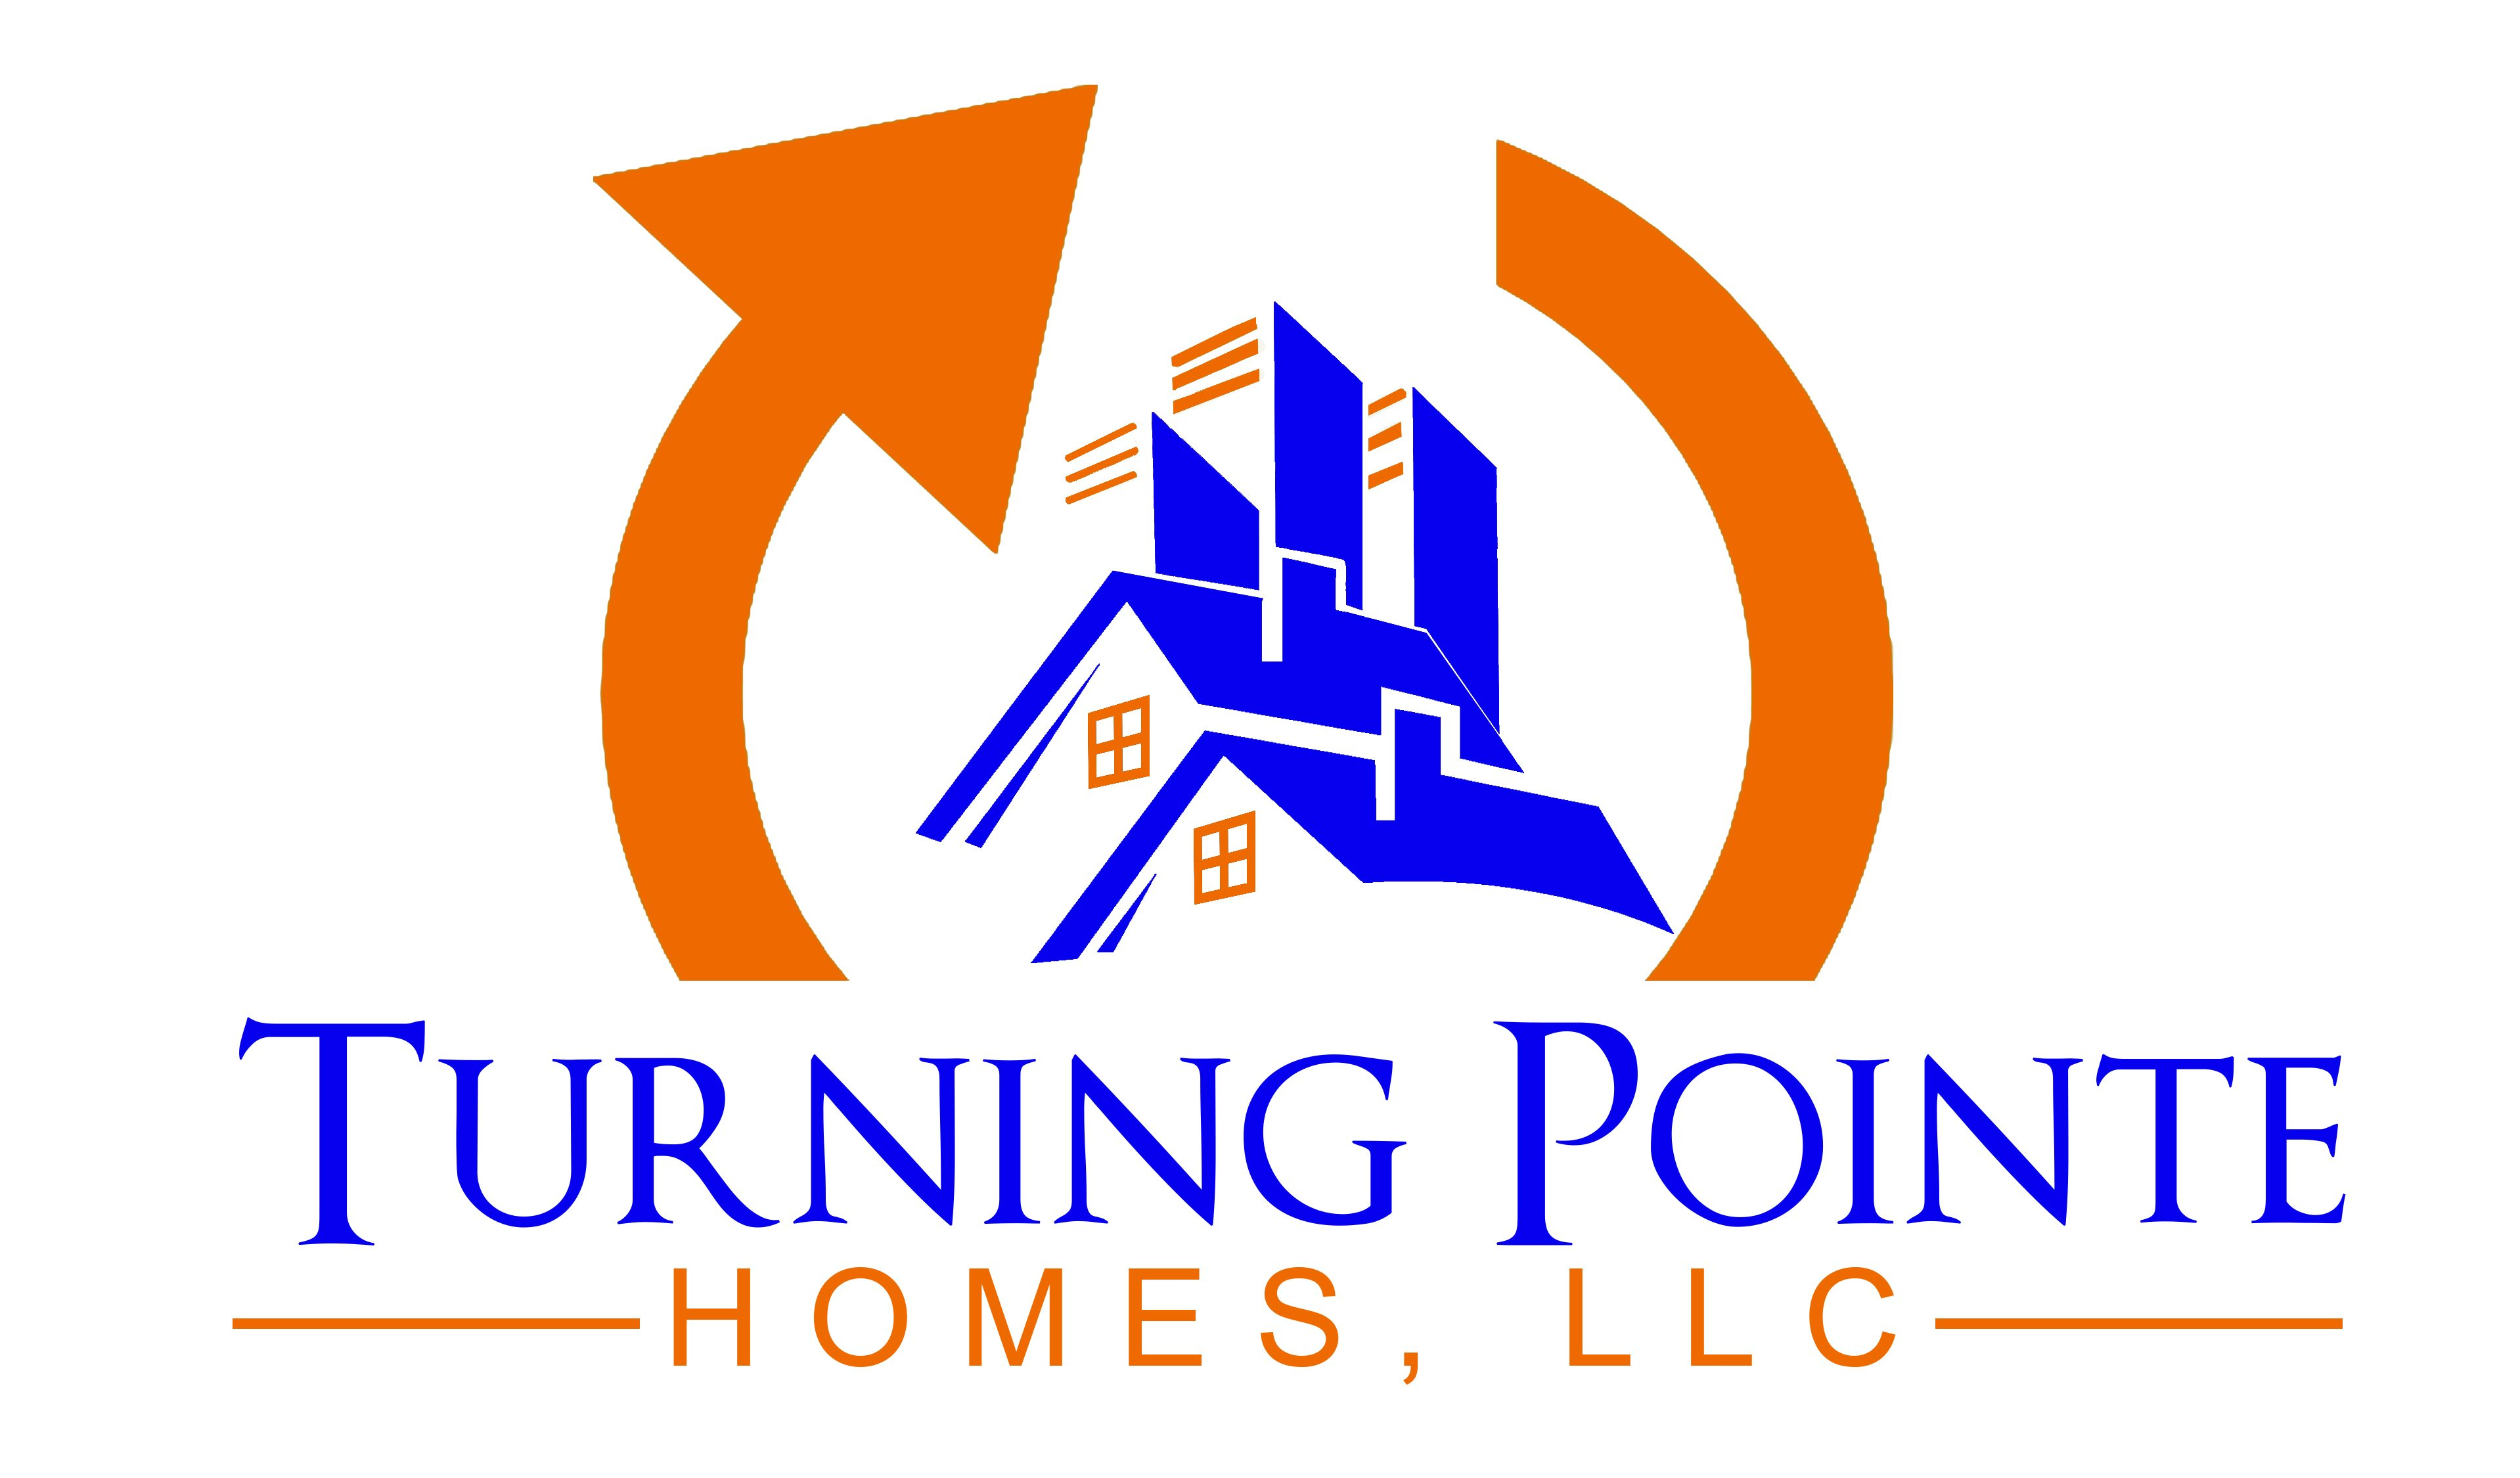 Turning Pointe Homes